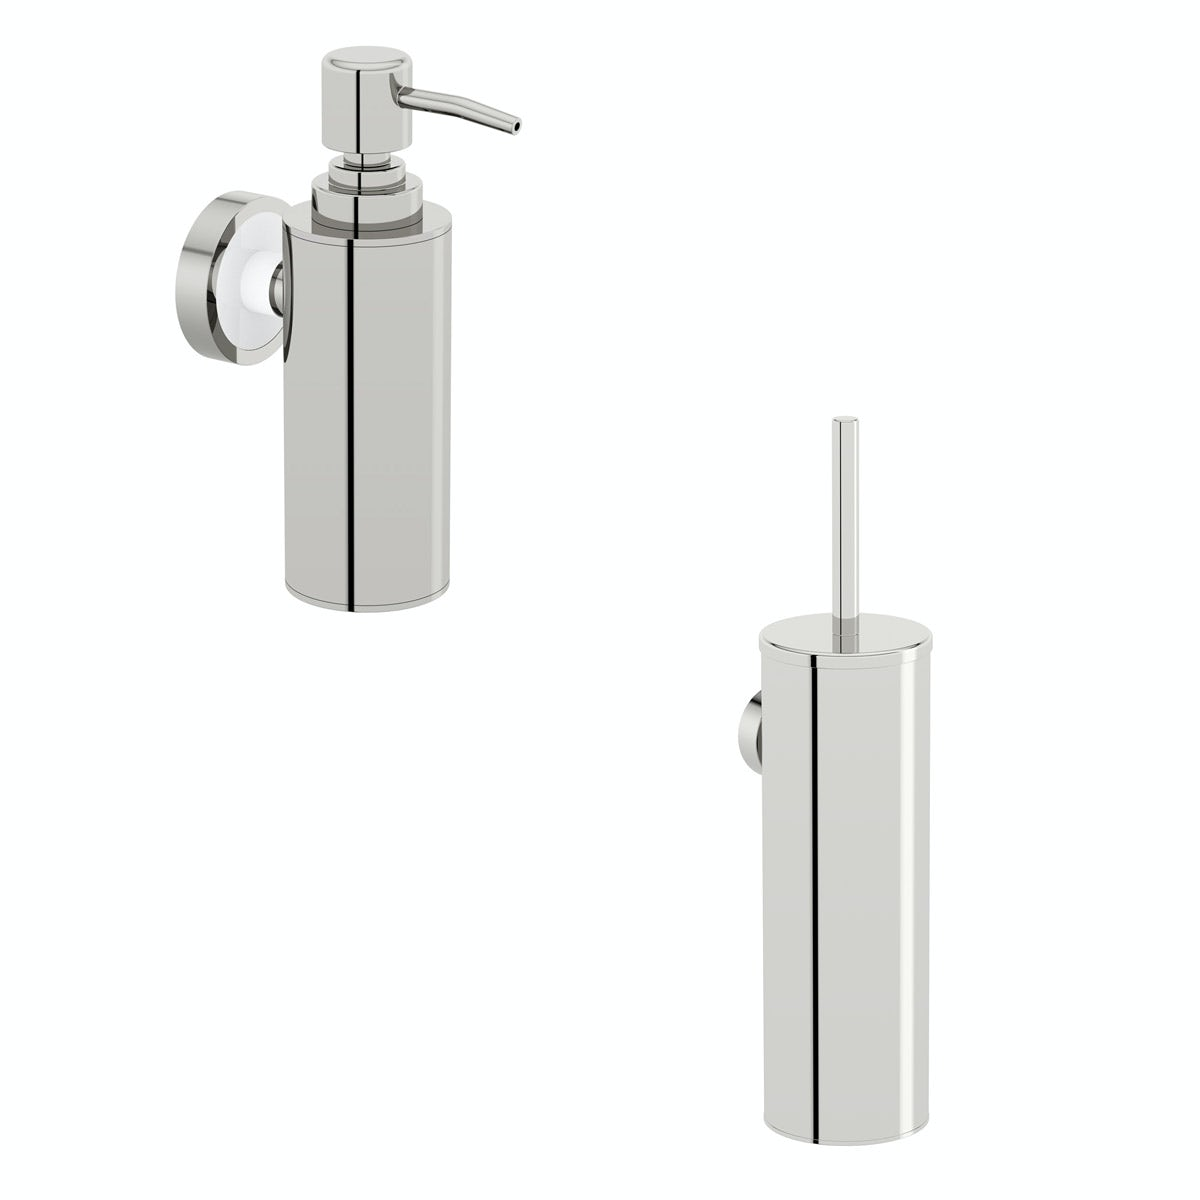 Orchard Options stainless steel 2 piece wall mounted accessory set